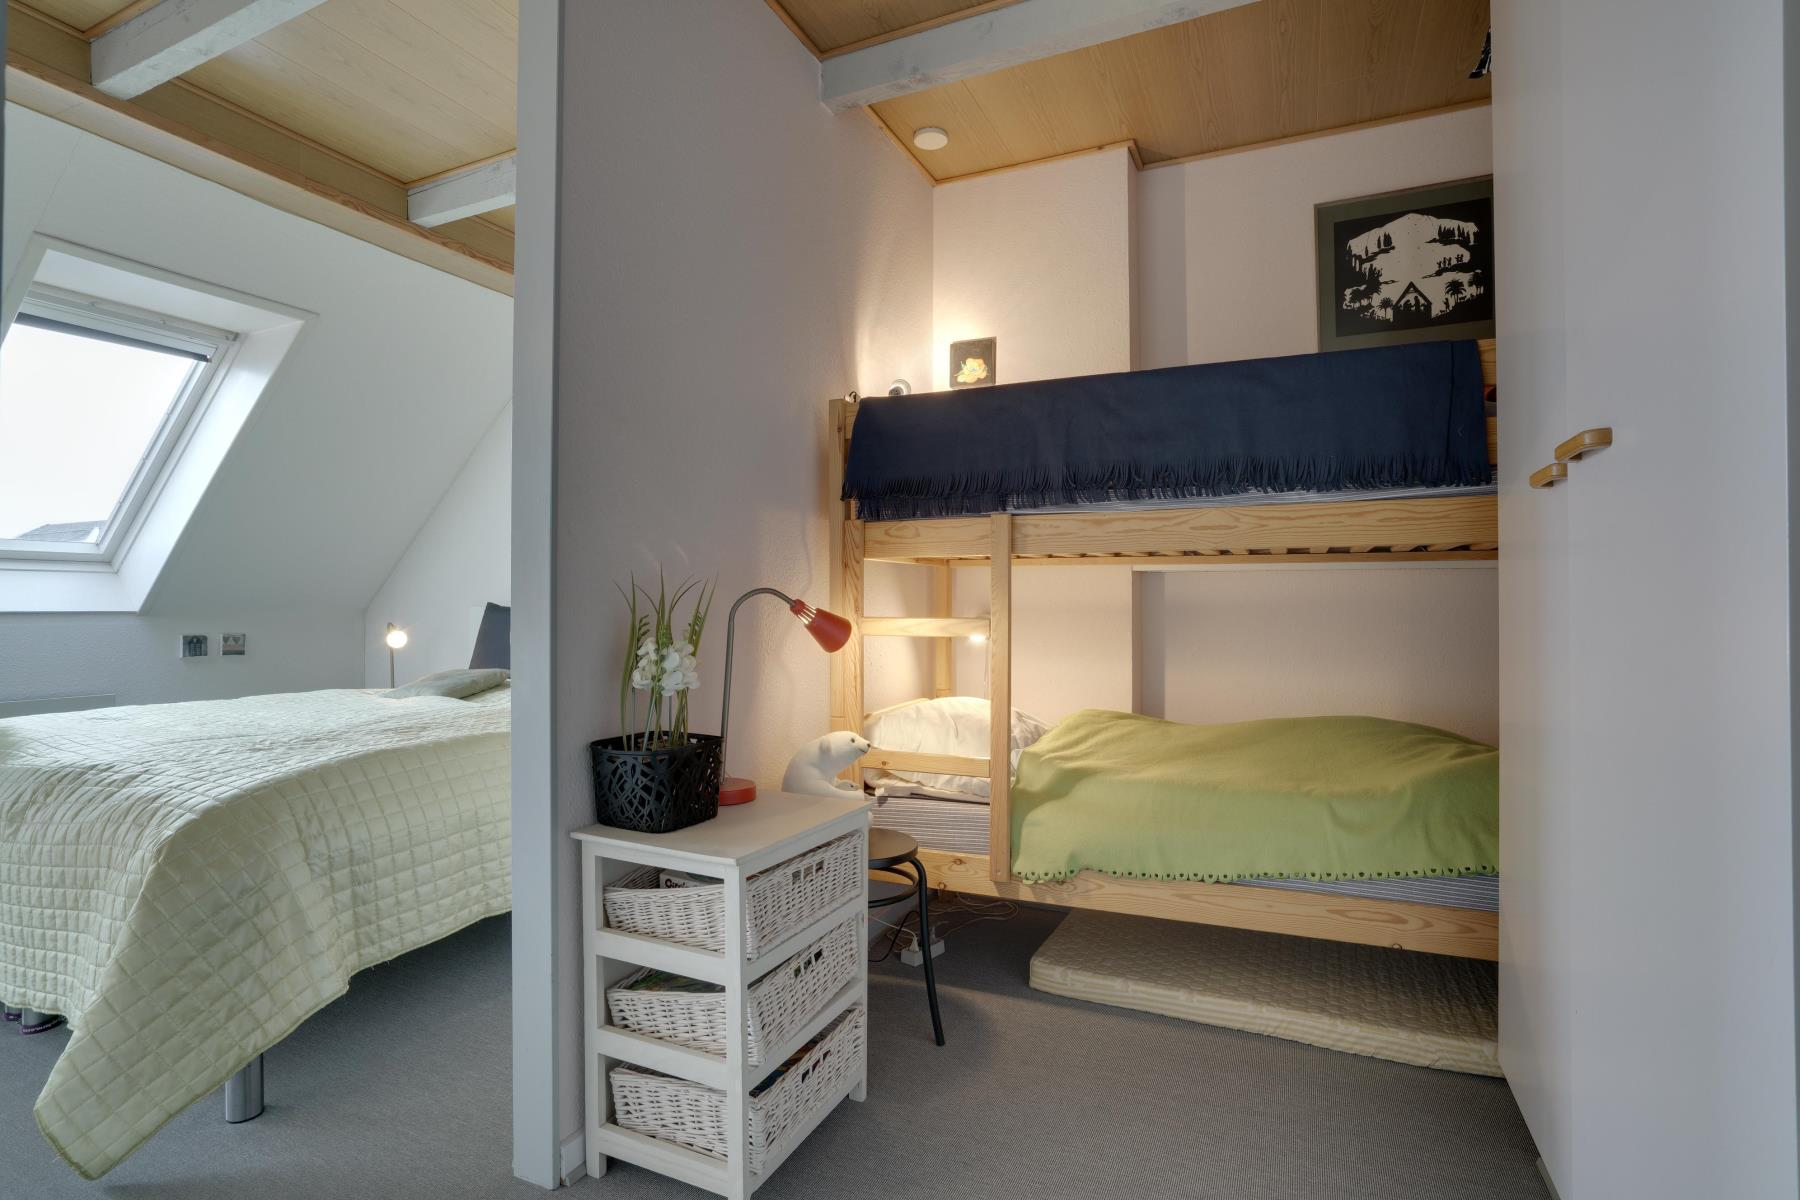 4 Persoons Bed 4 Persoons Vakantiehuis In Henne Strand Syd Nr Hs1009